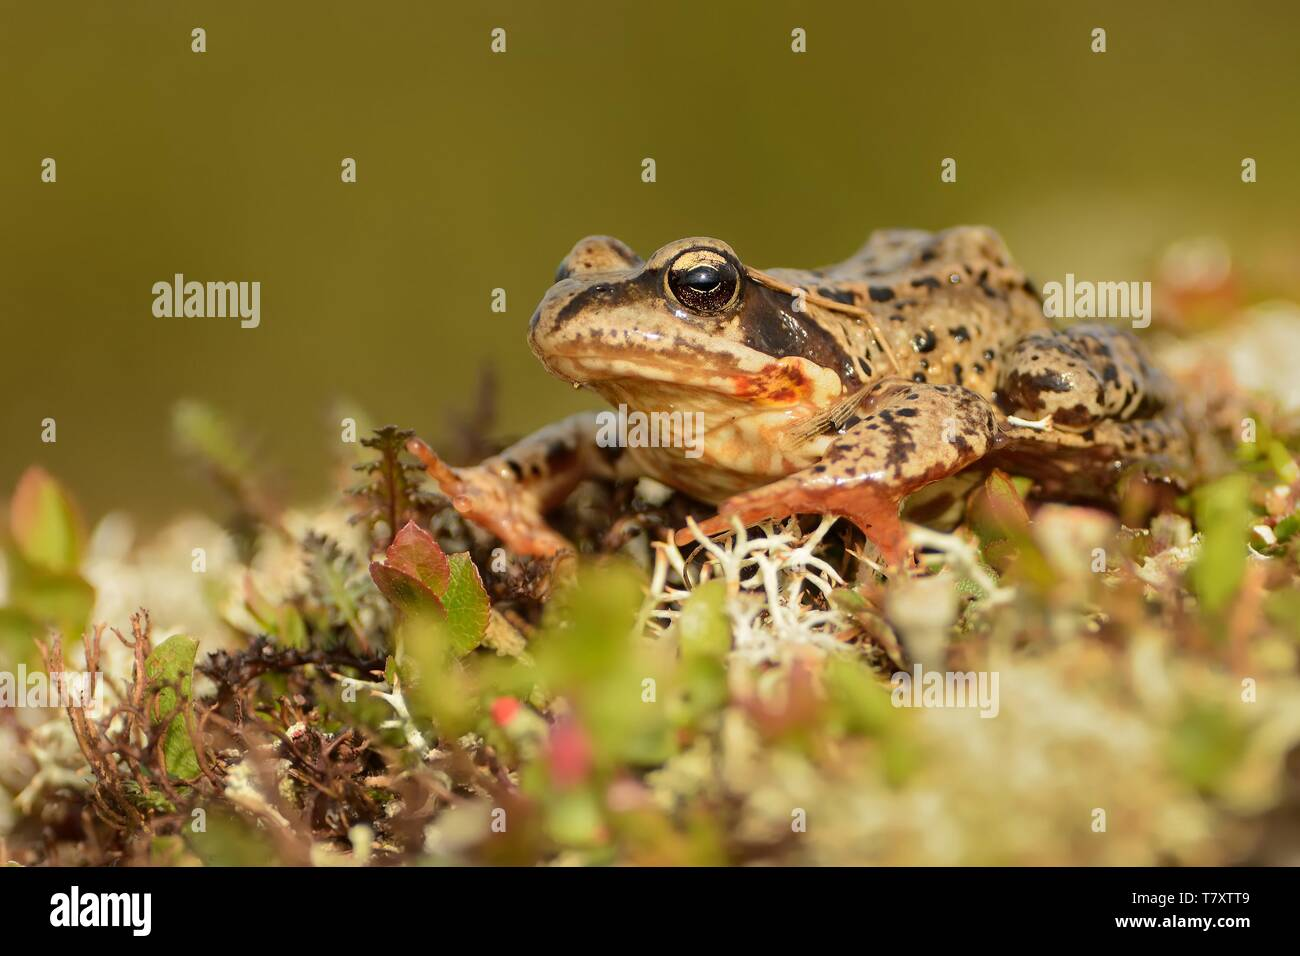 Grass Frog - Rana temporaria sitting on the grass. - Stock Image